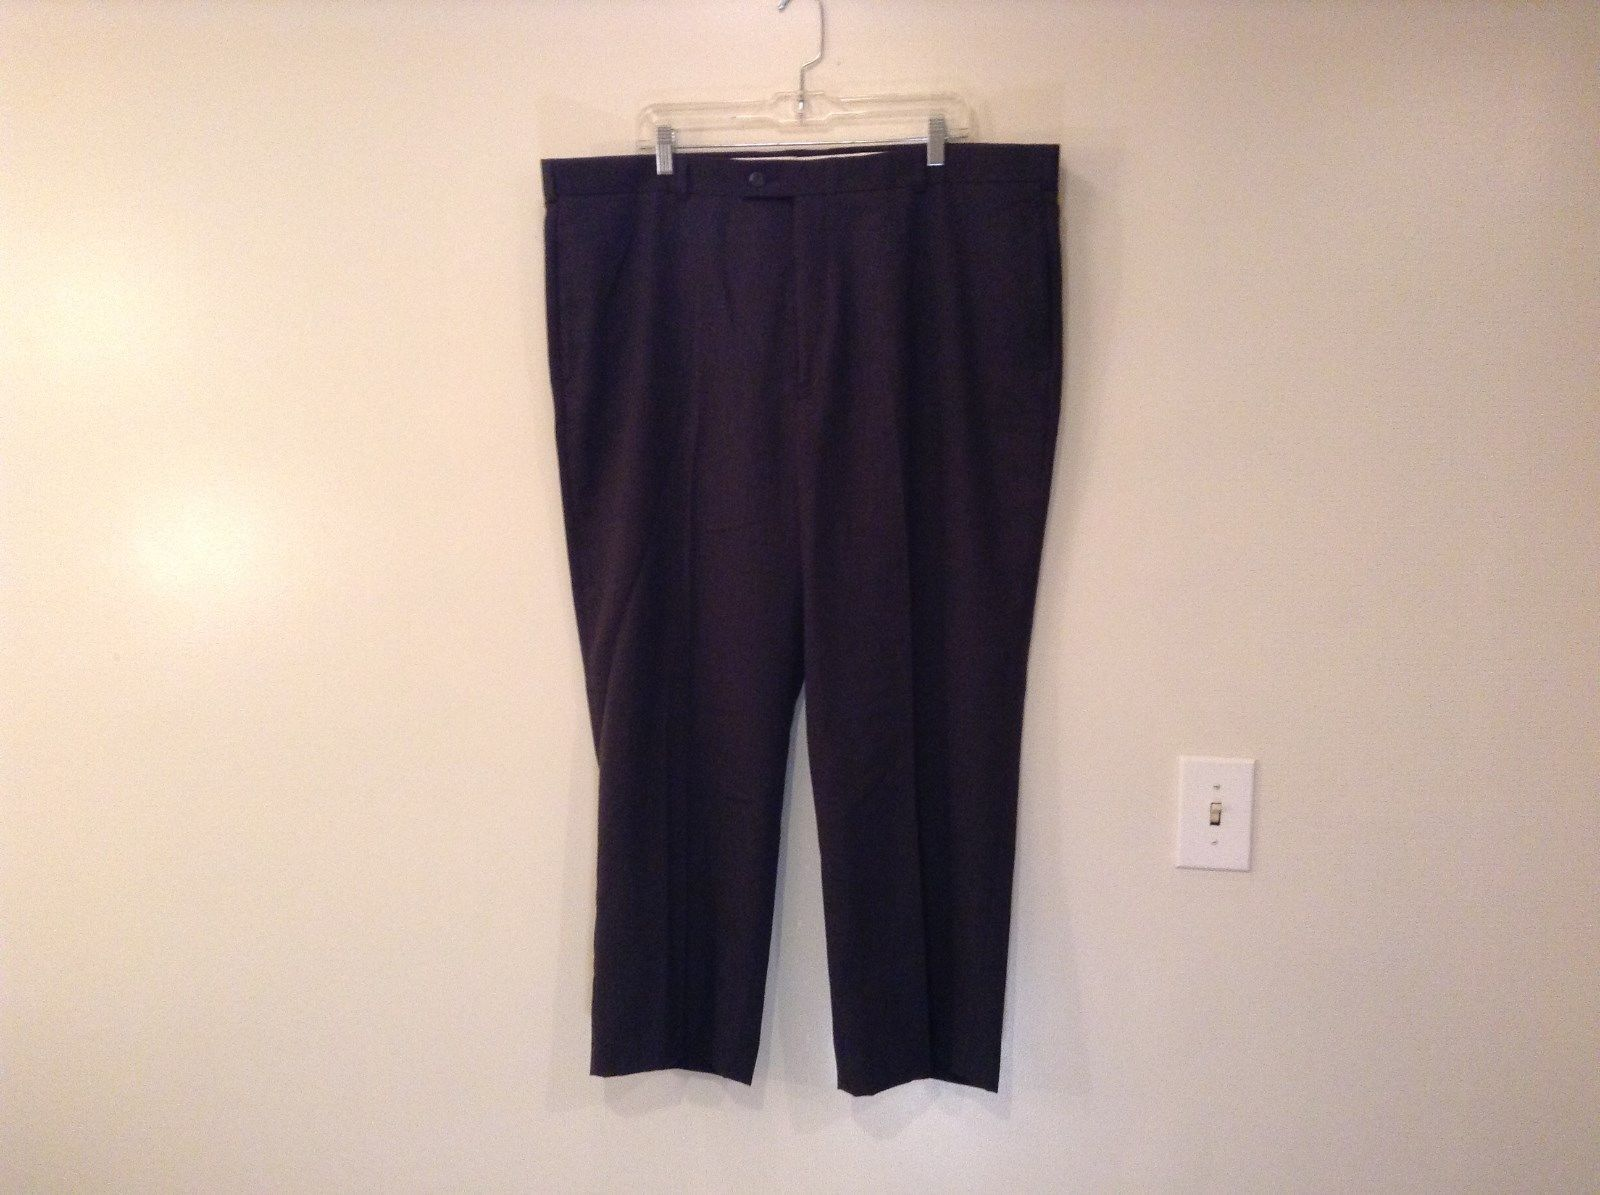 Slates Flat Front Dark Gray Unlined Dress Pants Size W44 by L30 Good Condition